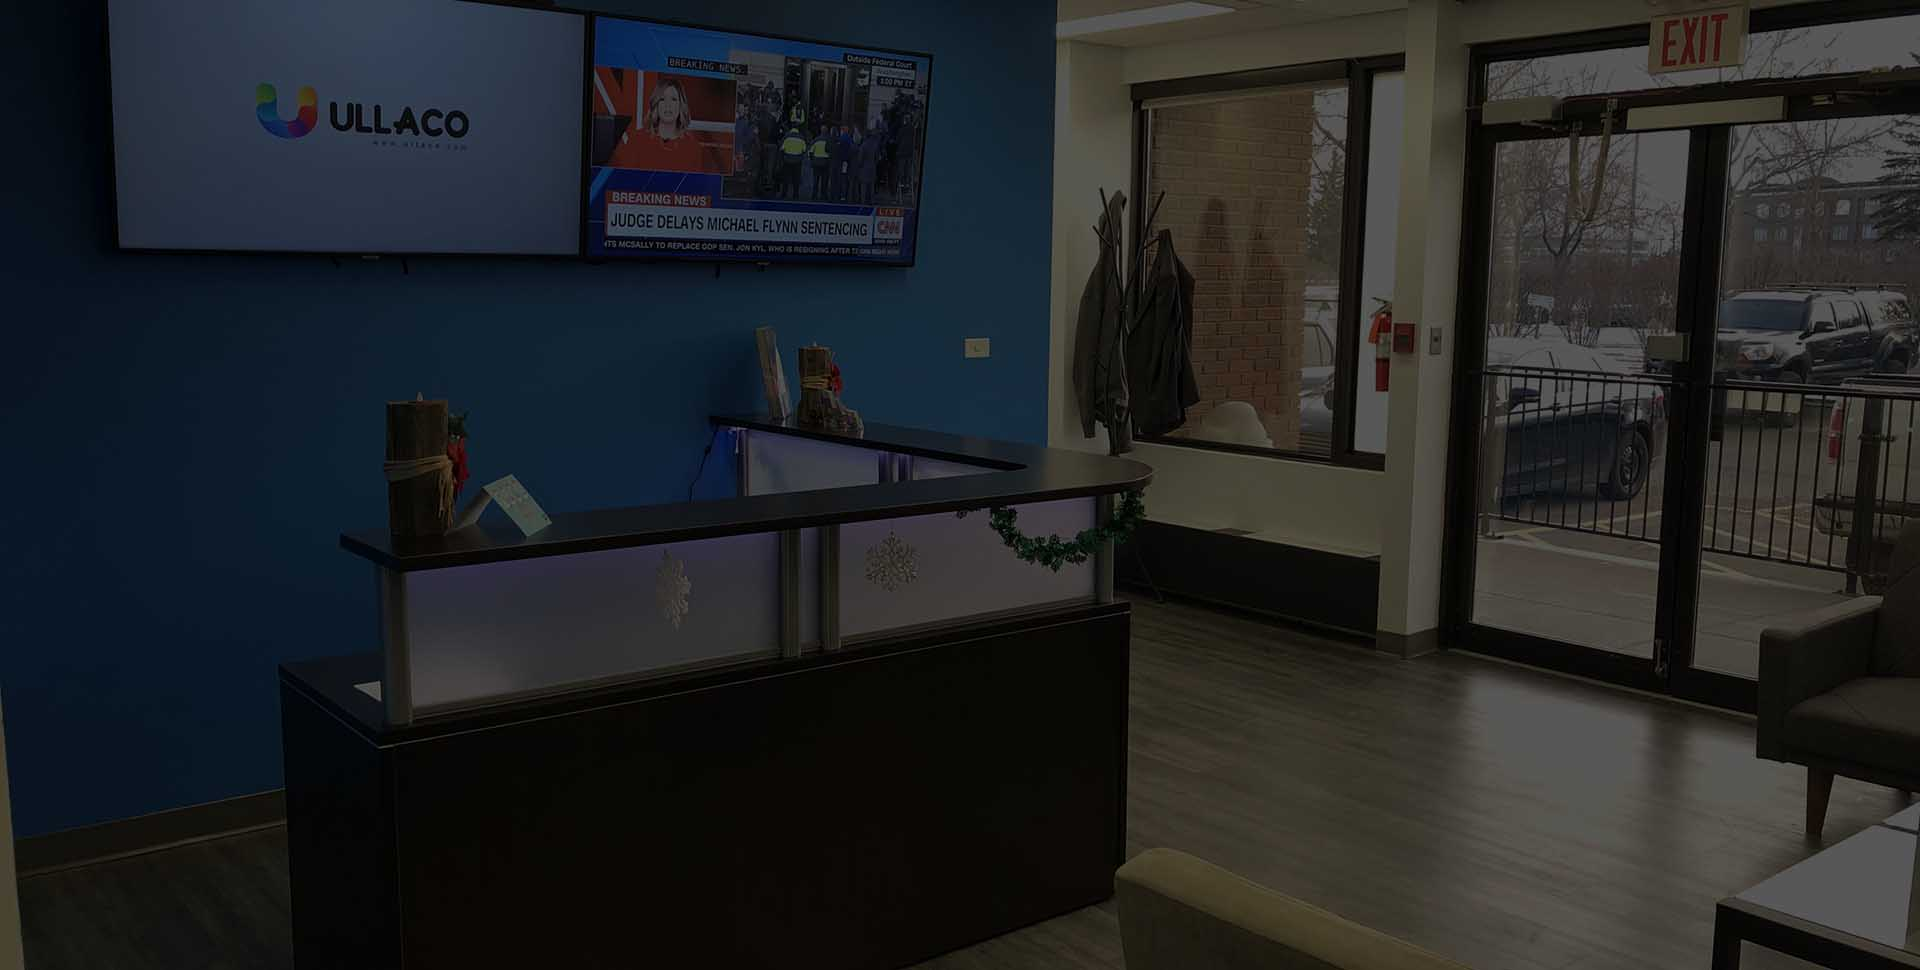 Reception area within our offices. Reception desk and monitors showing CNN and our Logo